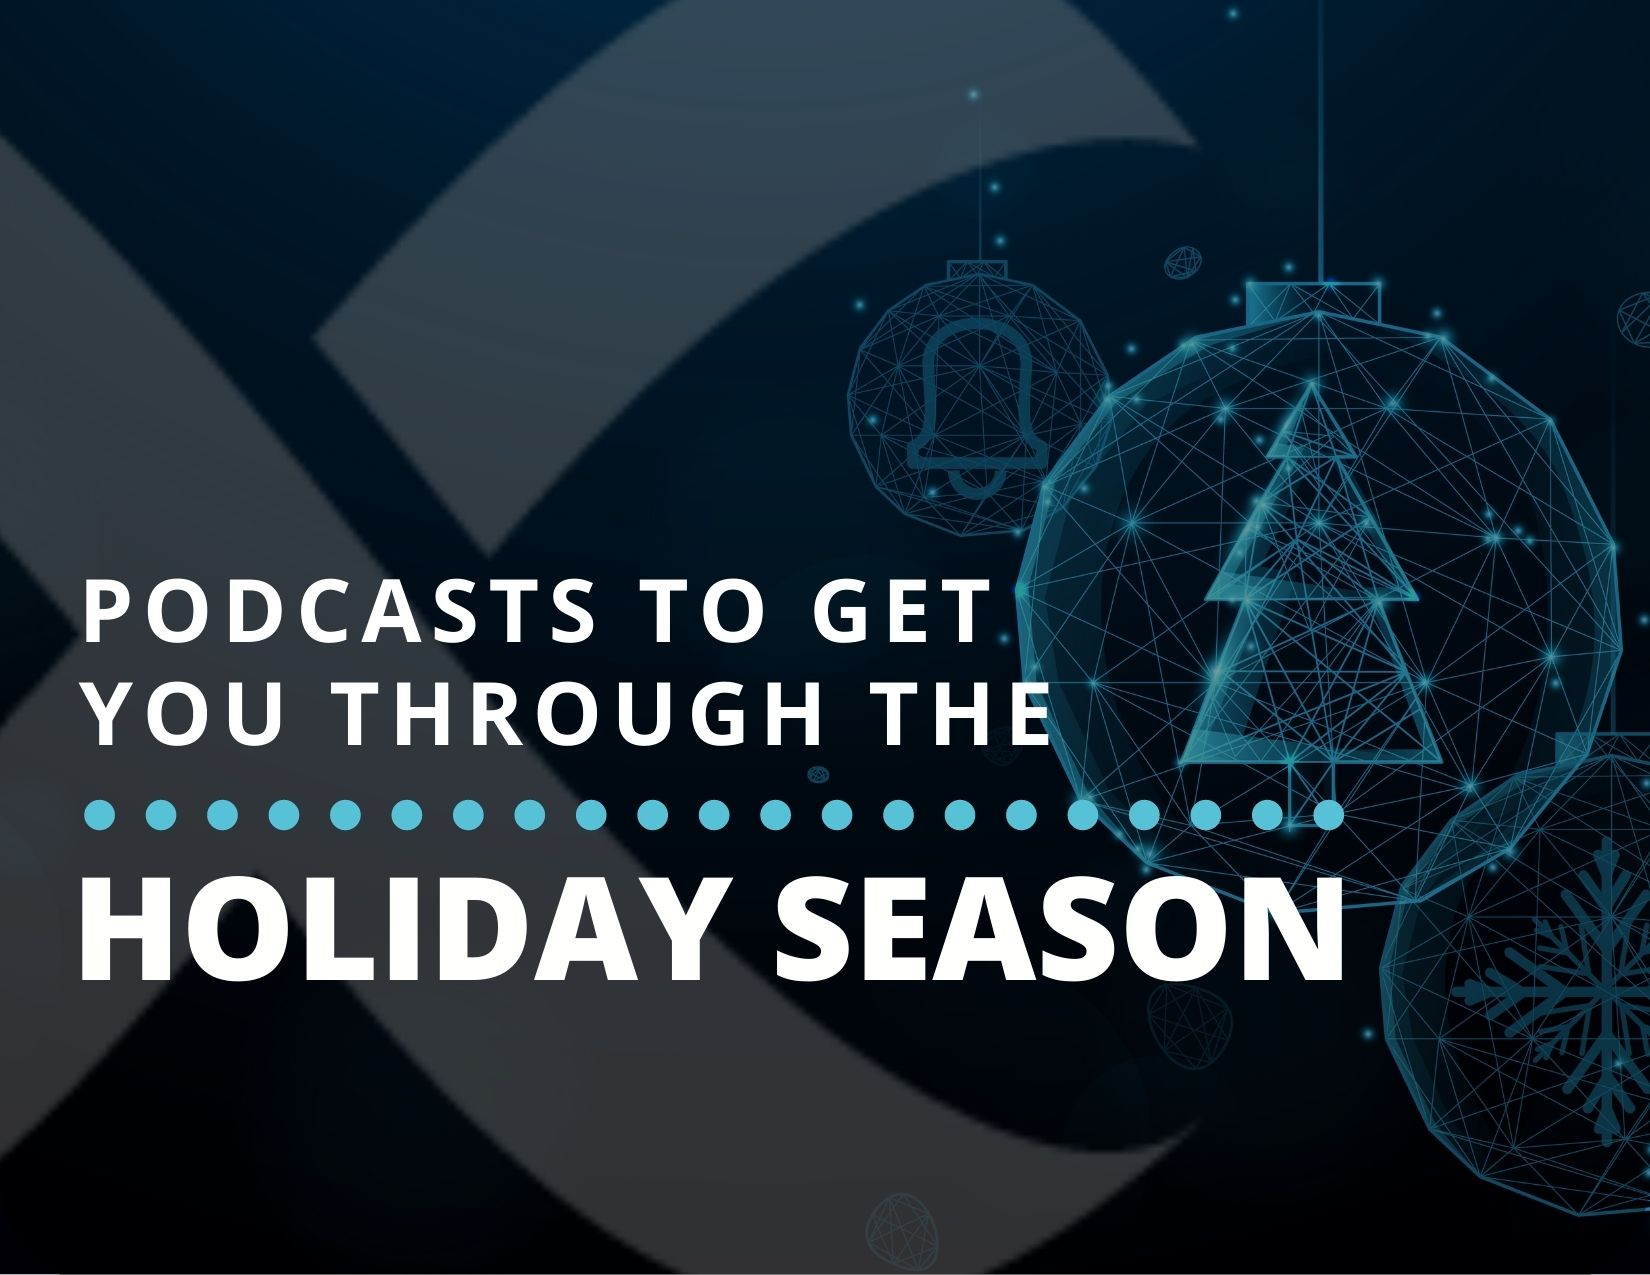 podcasts to get you through the holidays